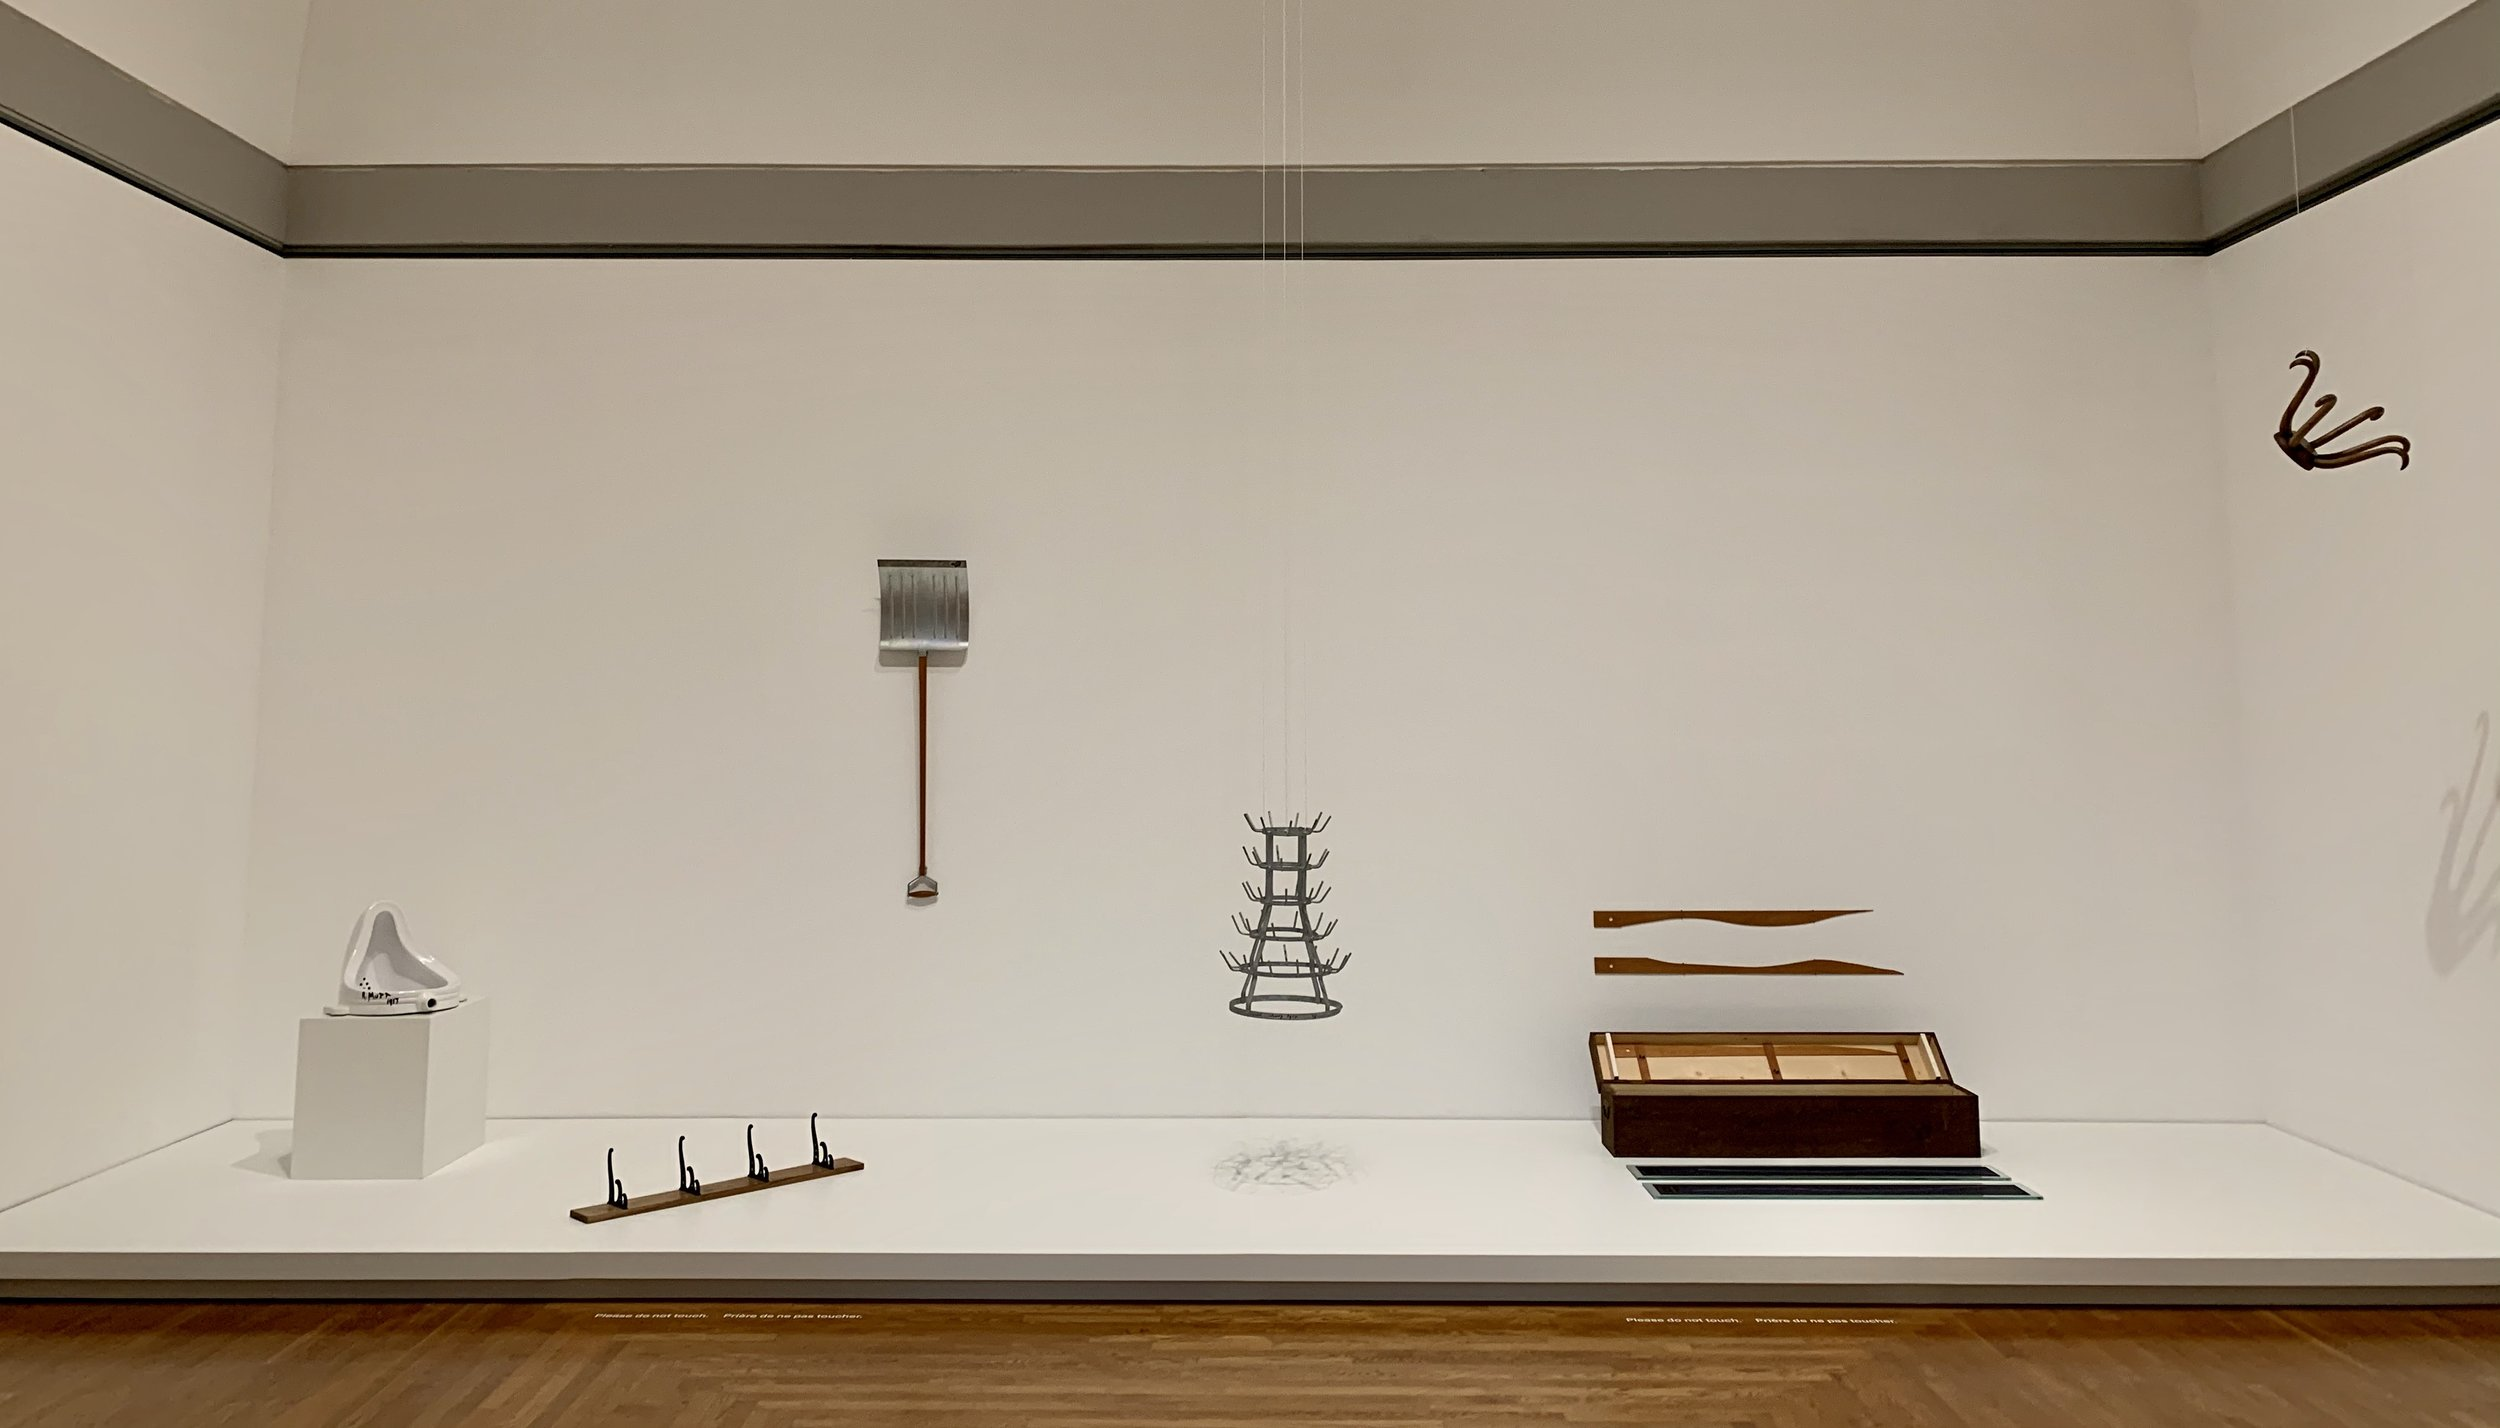 Marcel Duchamp's finest Readymades. A great surprise!